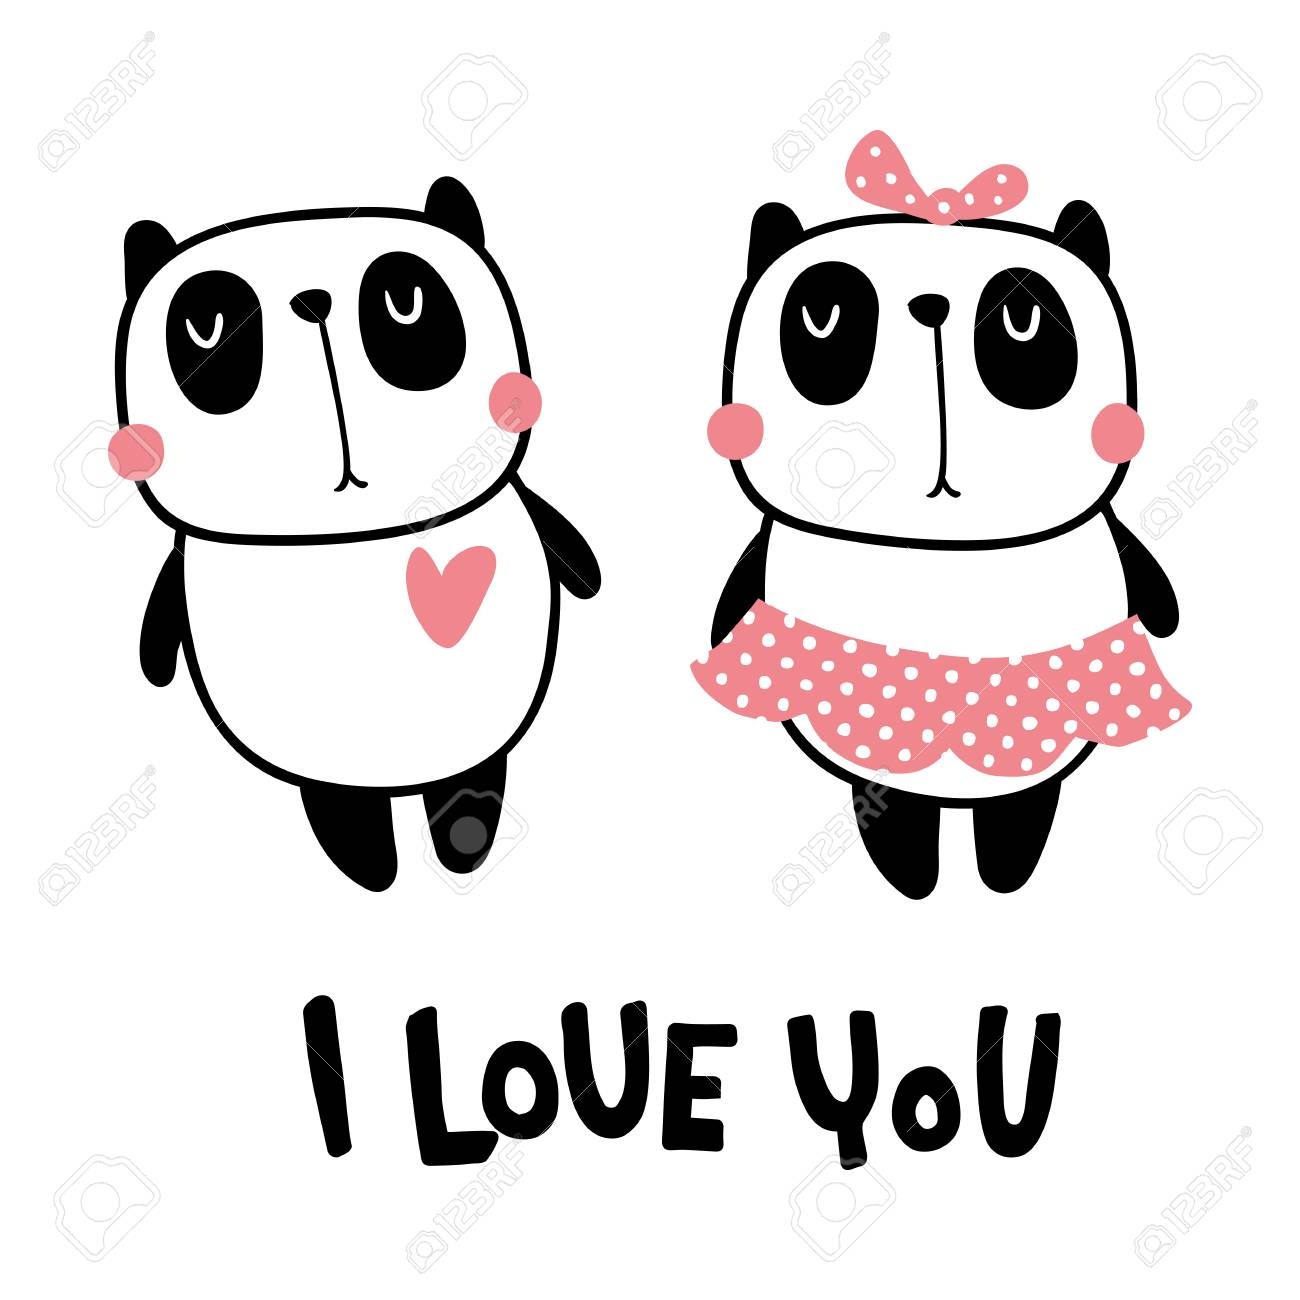 Vector illustration, cute panda couple and i love you hand lettering text - 101150473